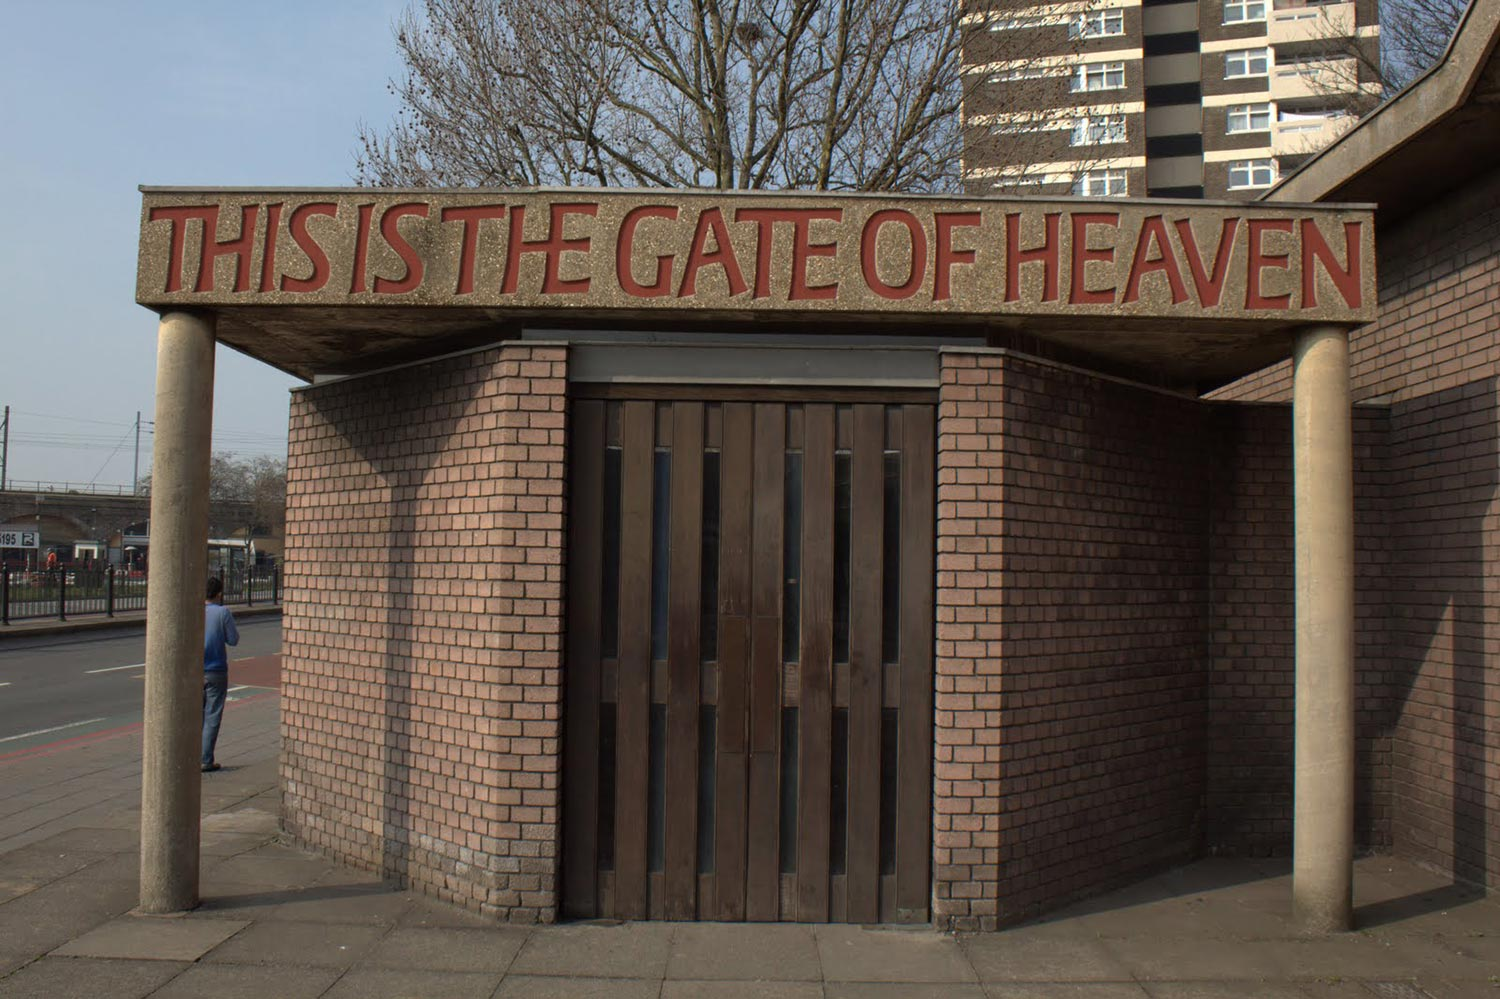 Burdett Road Gate of Heaven Mile End